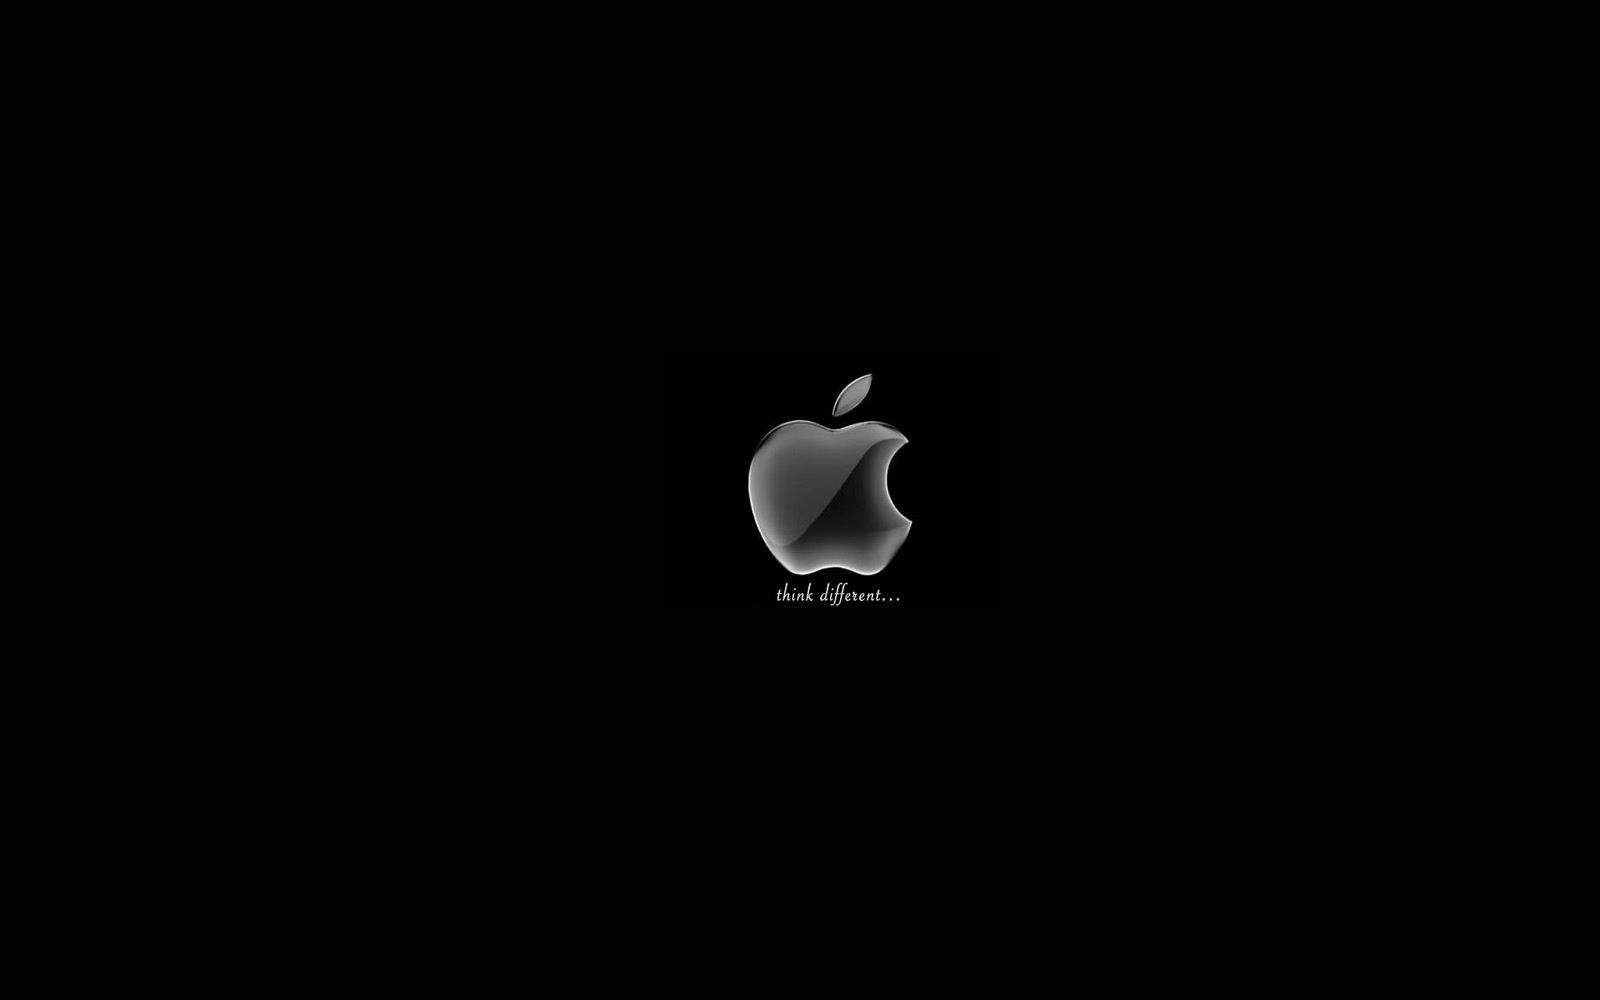 New Collections Apple Logo Wallpaper New Best Wallpapers 2011 1600x1000